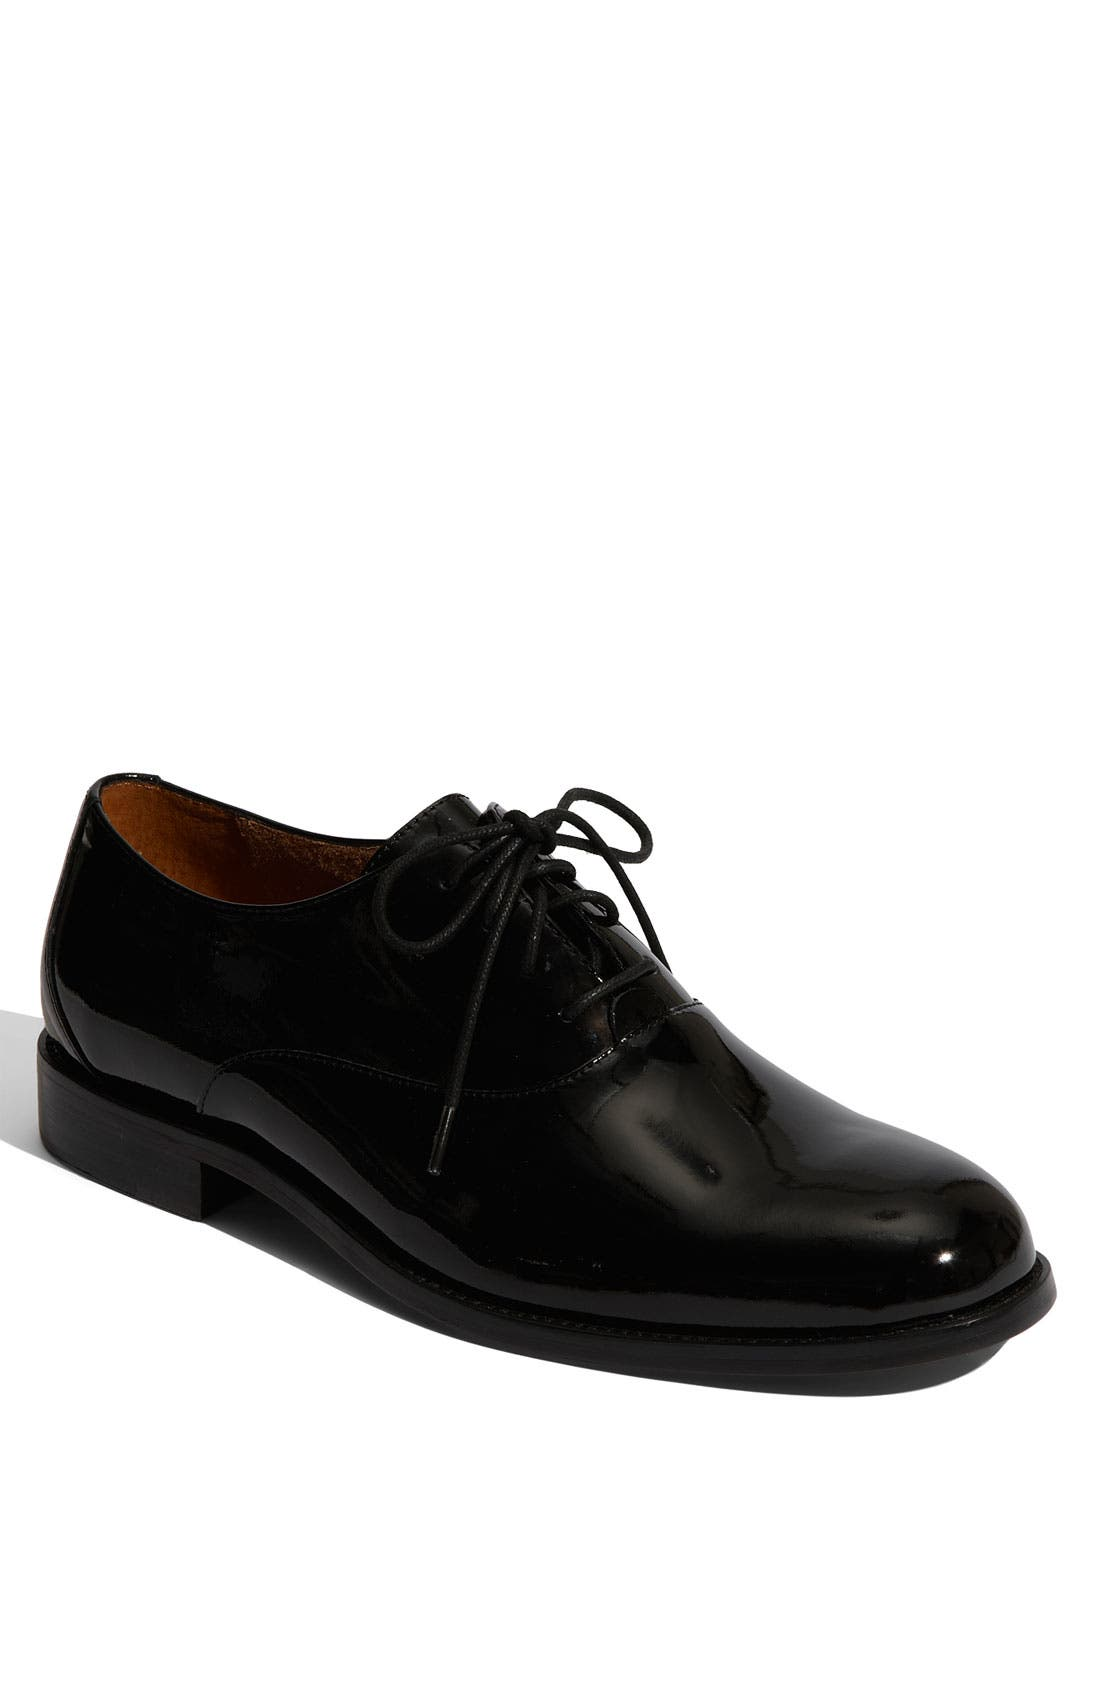 Alternate Image 1 Selected - Florsheim 'Kingston' Patent Leather Oxford (Men)